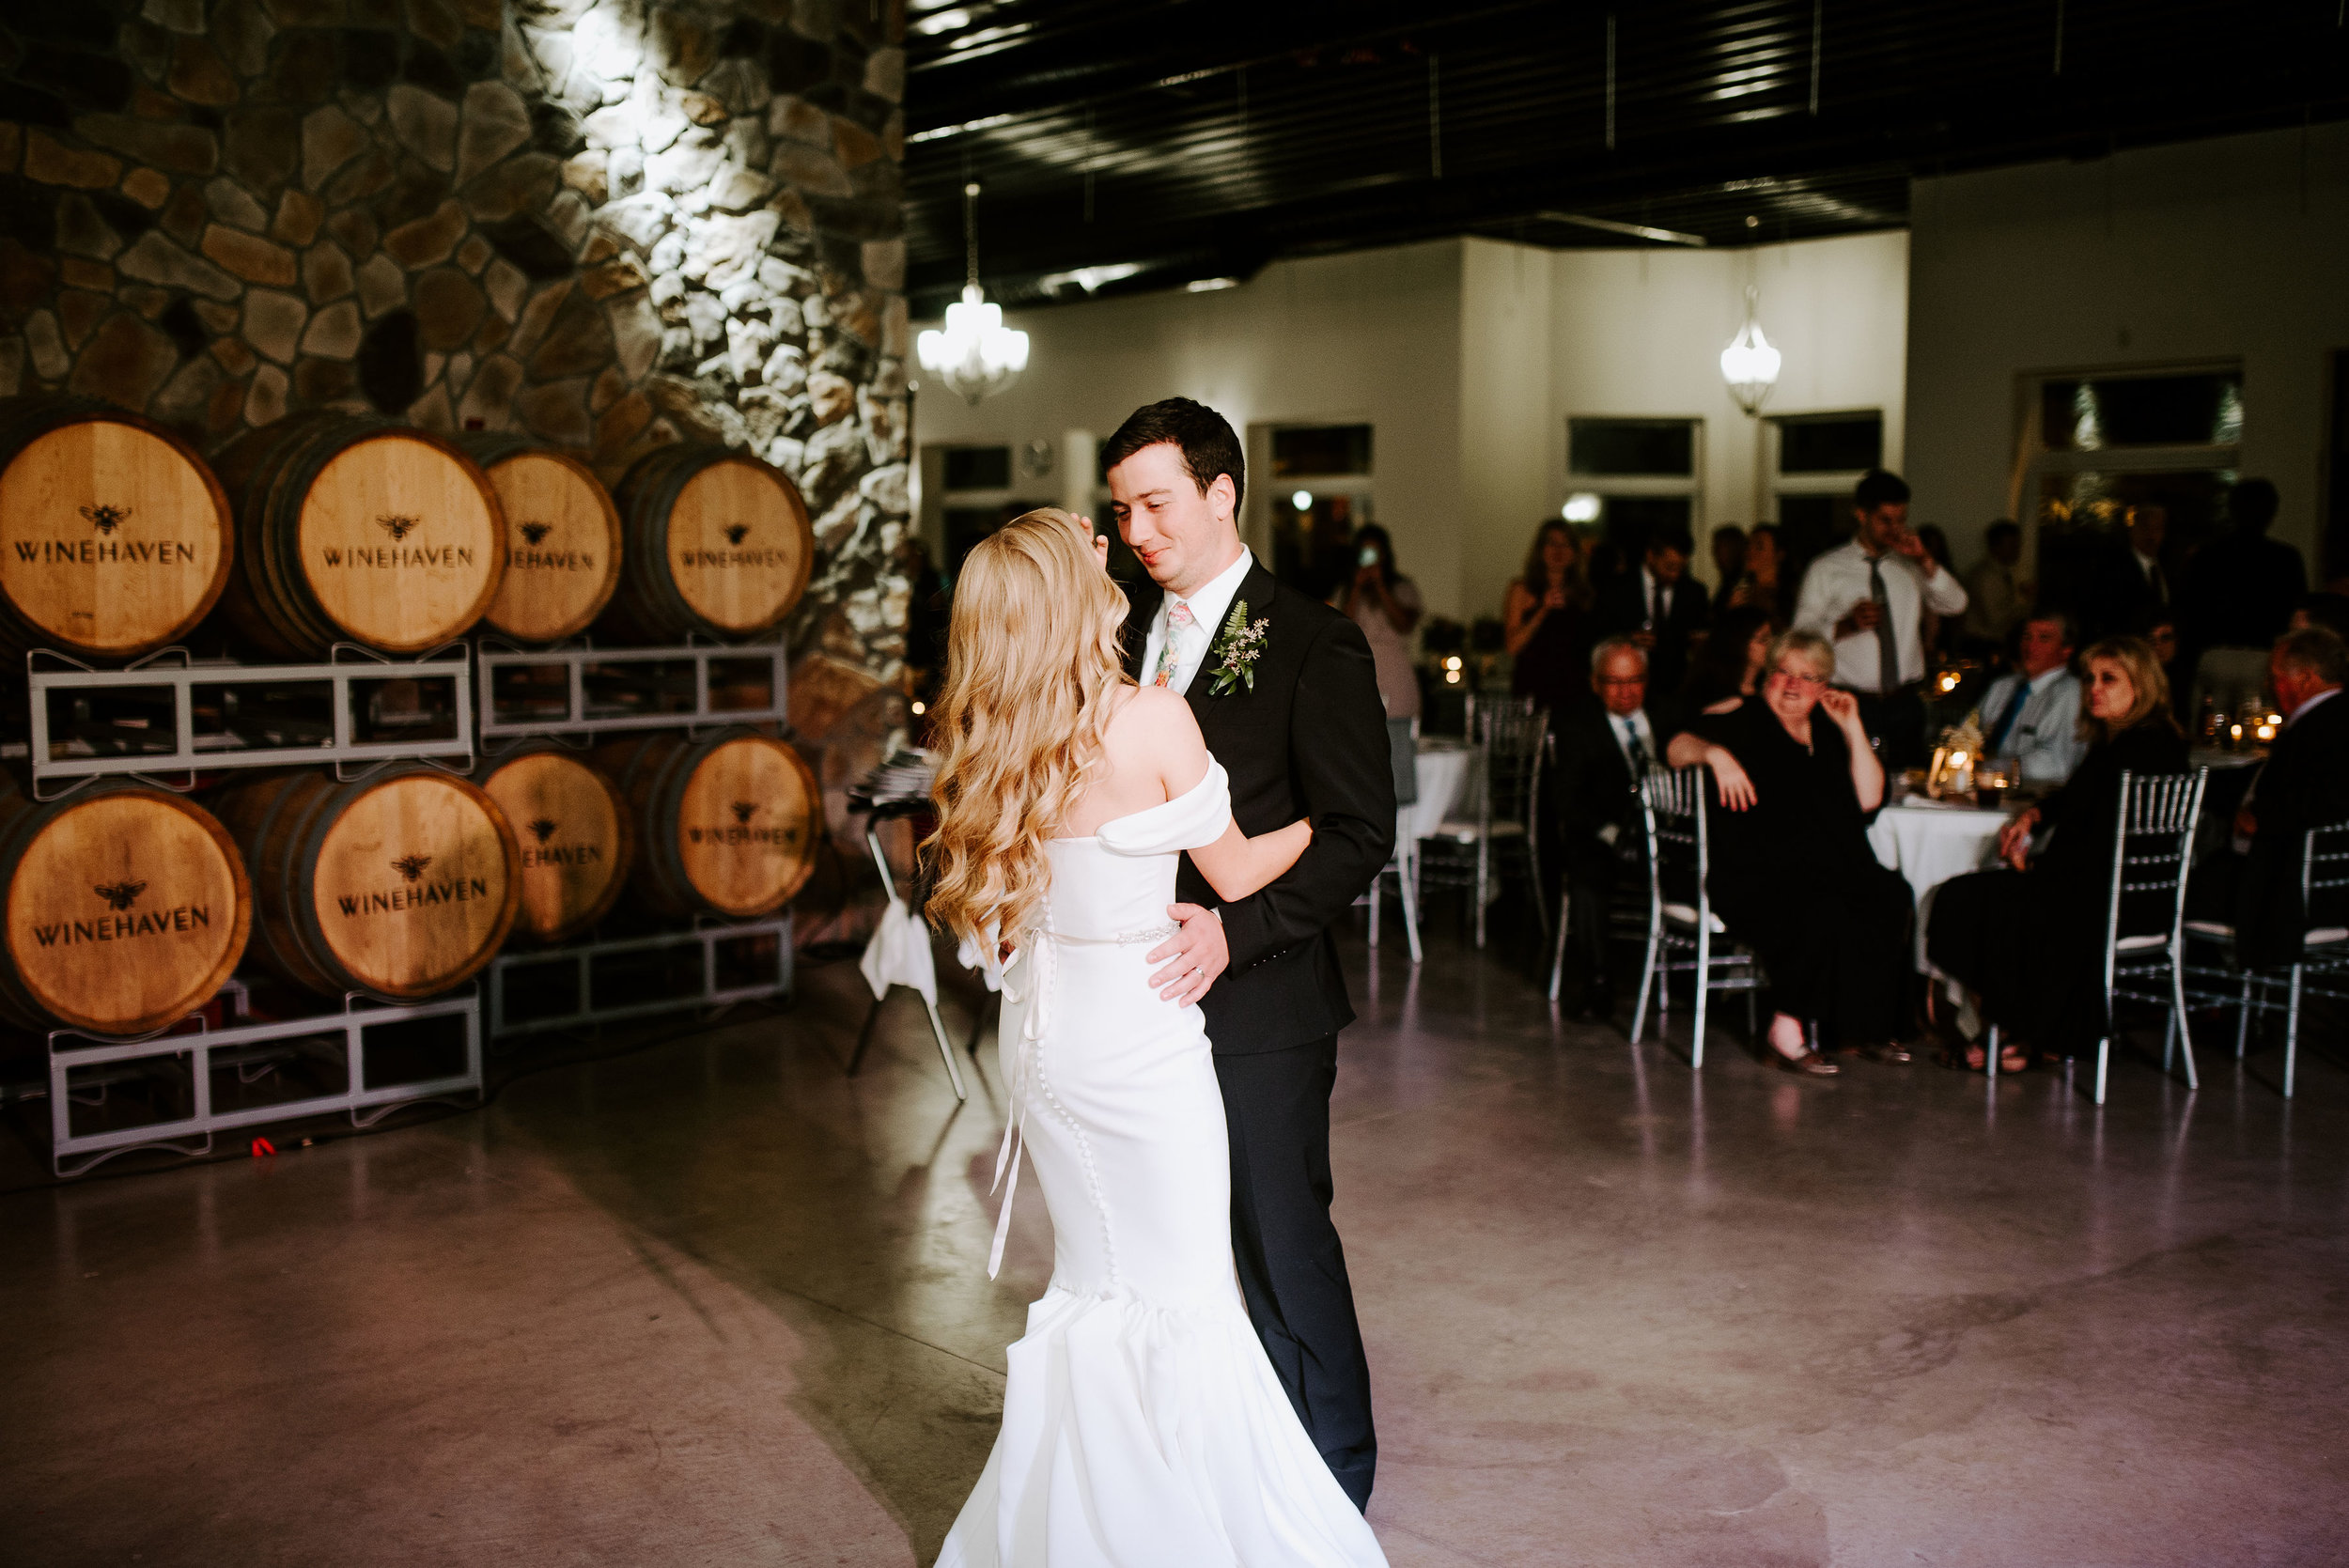 Winehaven-Winery-Wedding-Reception-First-Dance-Minneapolis-MN.jpg